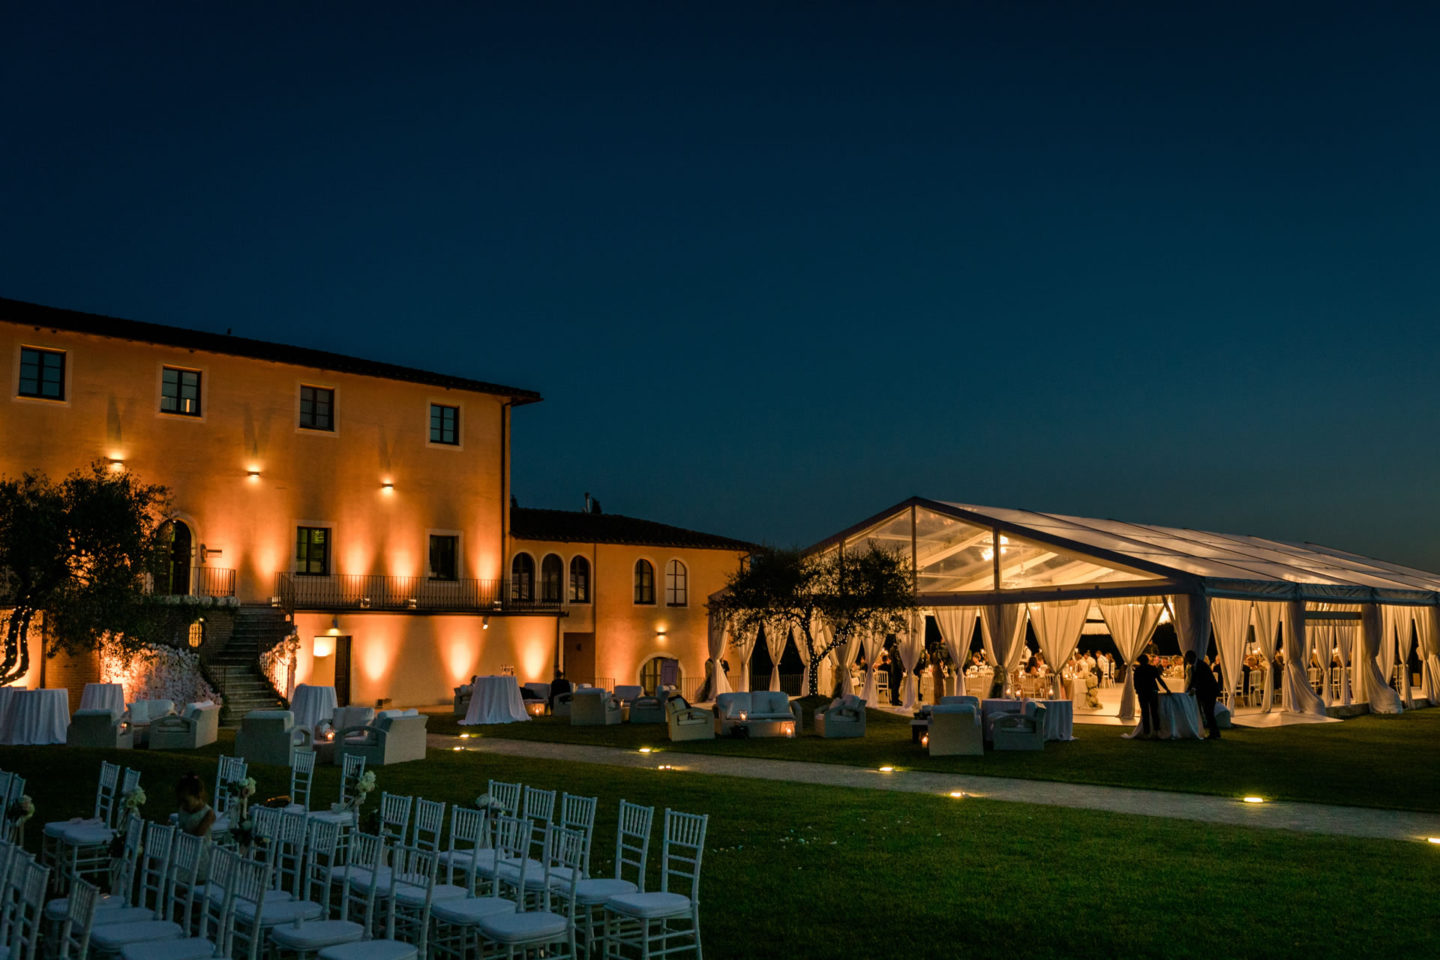 Evening :: Exciting wedding in the countryside of Siena :: Luxury wedding photography - 57 :: Evening